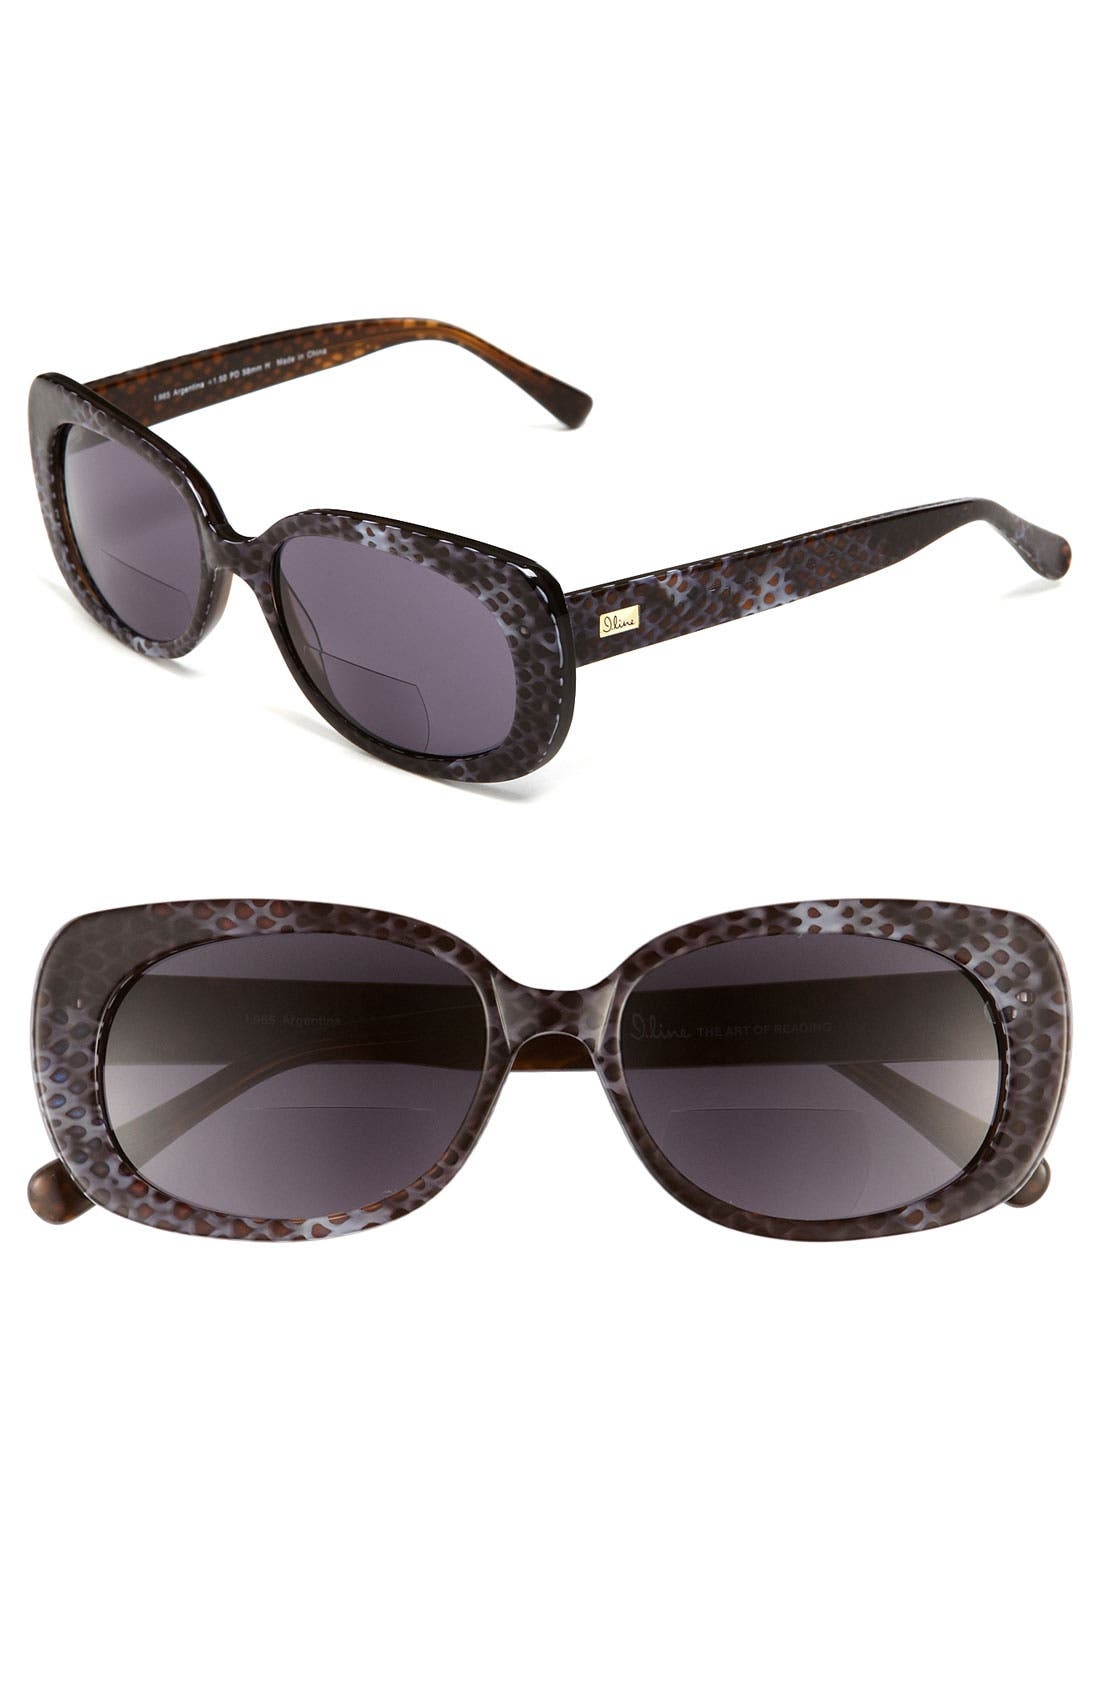 Main Image - I Line Eyewear Reading Sunglasses